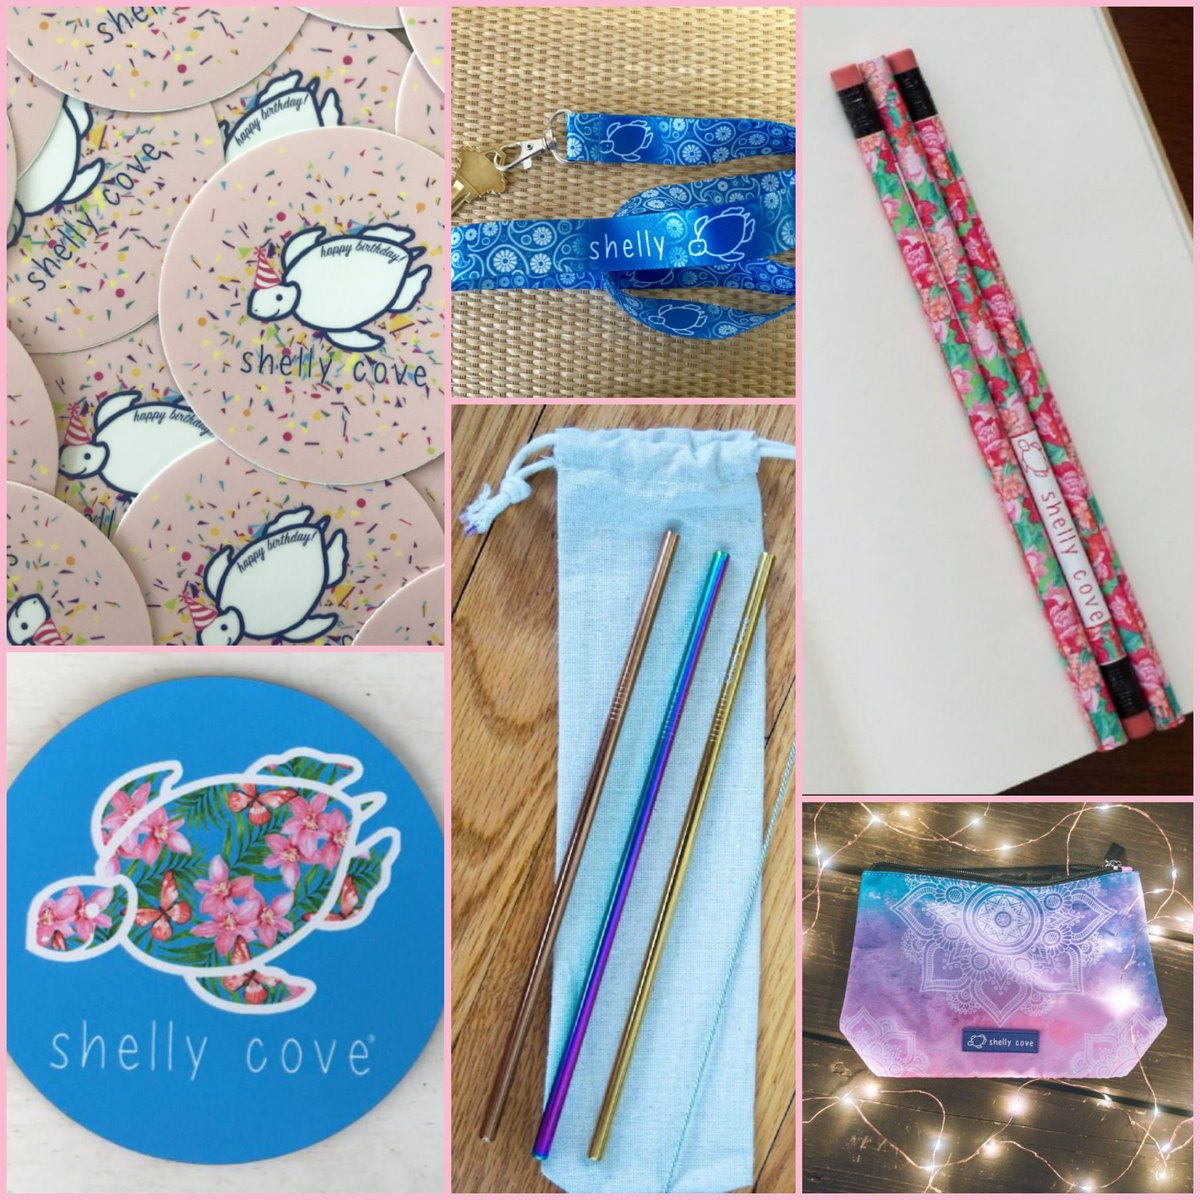 eb9356dc6a3b Stocking Stuffers Under $10 @ http://www.shellycove.com ! Head over and use  my personal code REIVA10 to get 10%OFF!